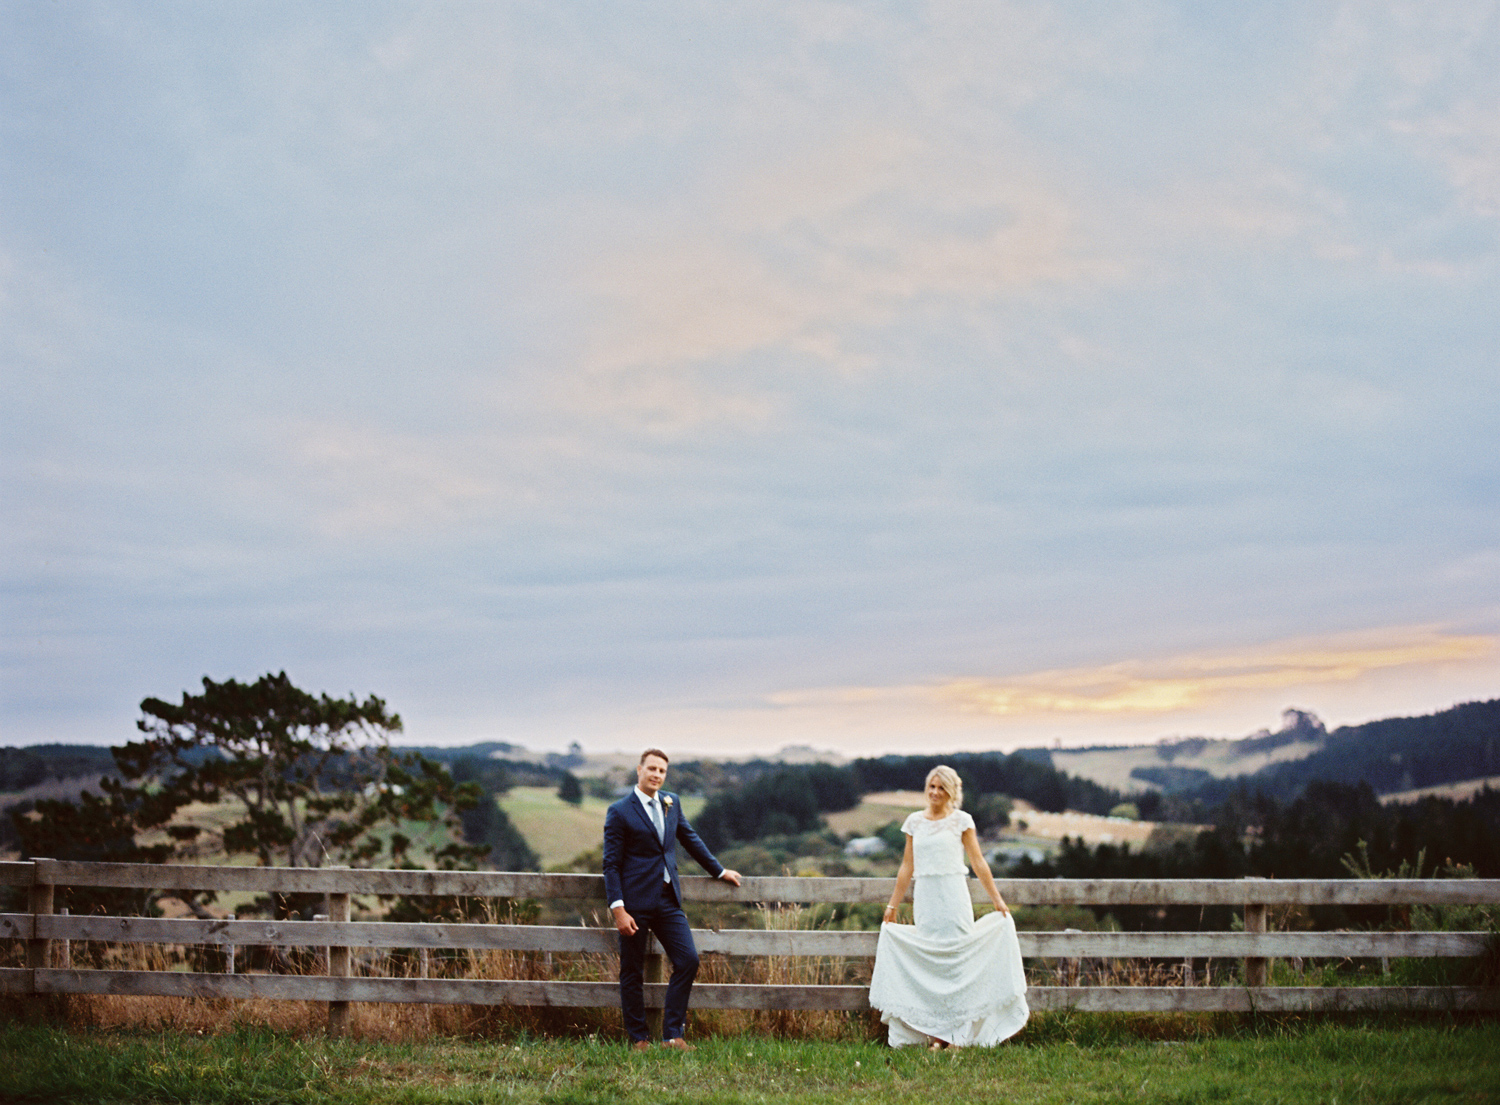 new-zealand-wedding-film-photographer-ryan-flynn-0048.JPG